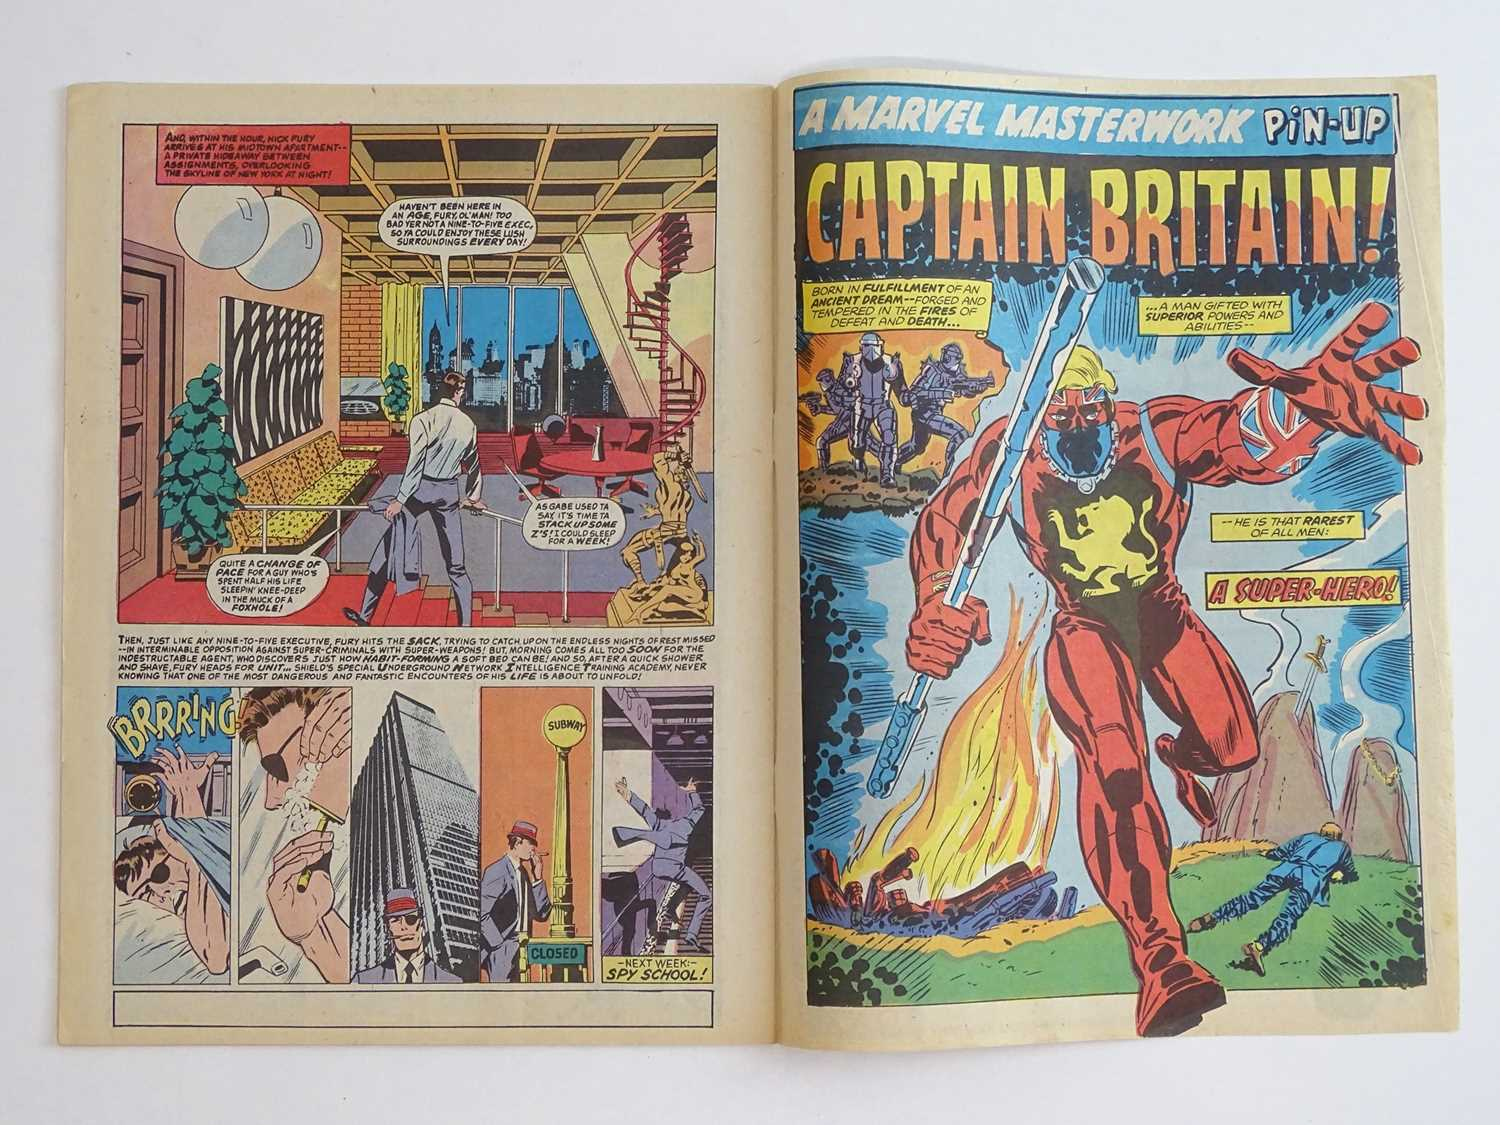 CAPTAIN BRITAIN #1 - (1976 - BRITISH MARVEL) - Origin and First appearance of Captain Britain - Image 5 of 12